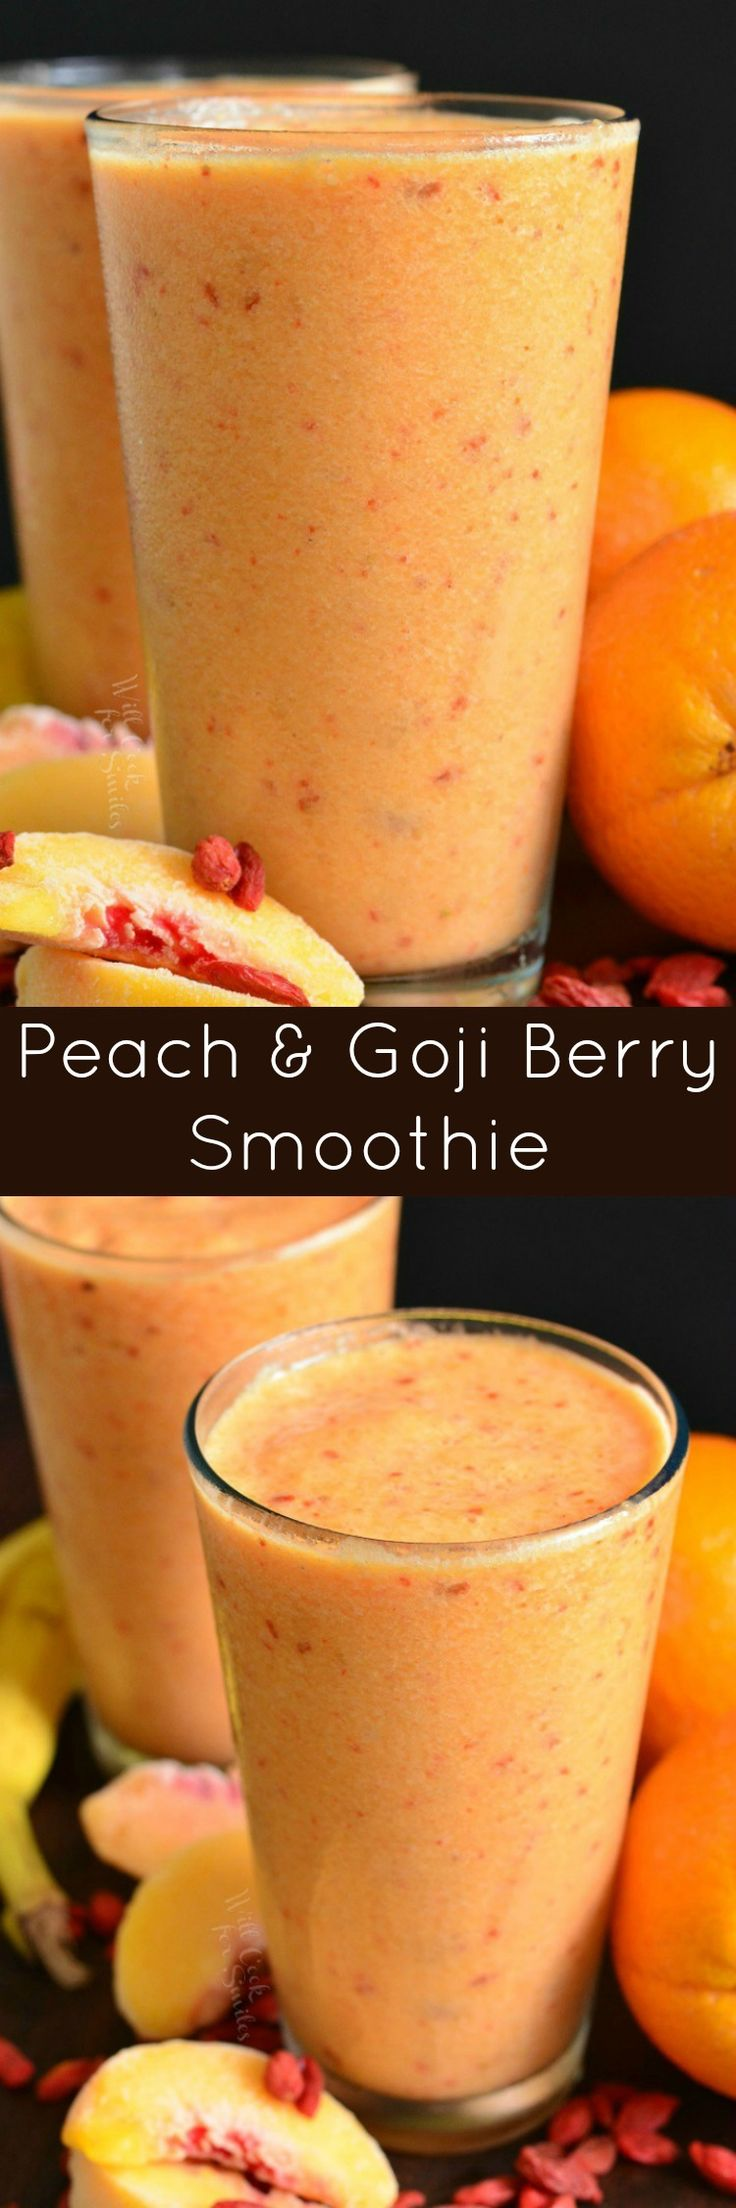 Creamy Peach and Goji Berry Smoothie. This smoothie is loaded with peaches, Goji berries, banana, @LoveMySilk Almond Milk, and a splash of orange juice.